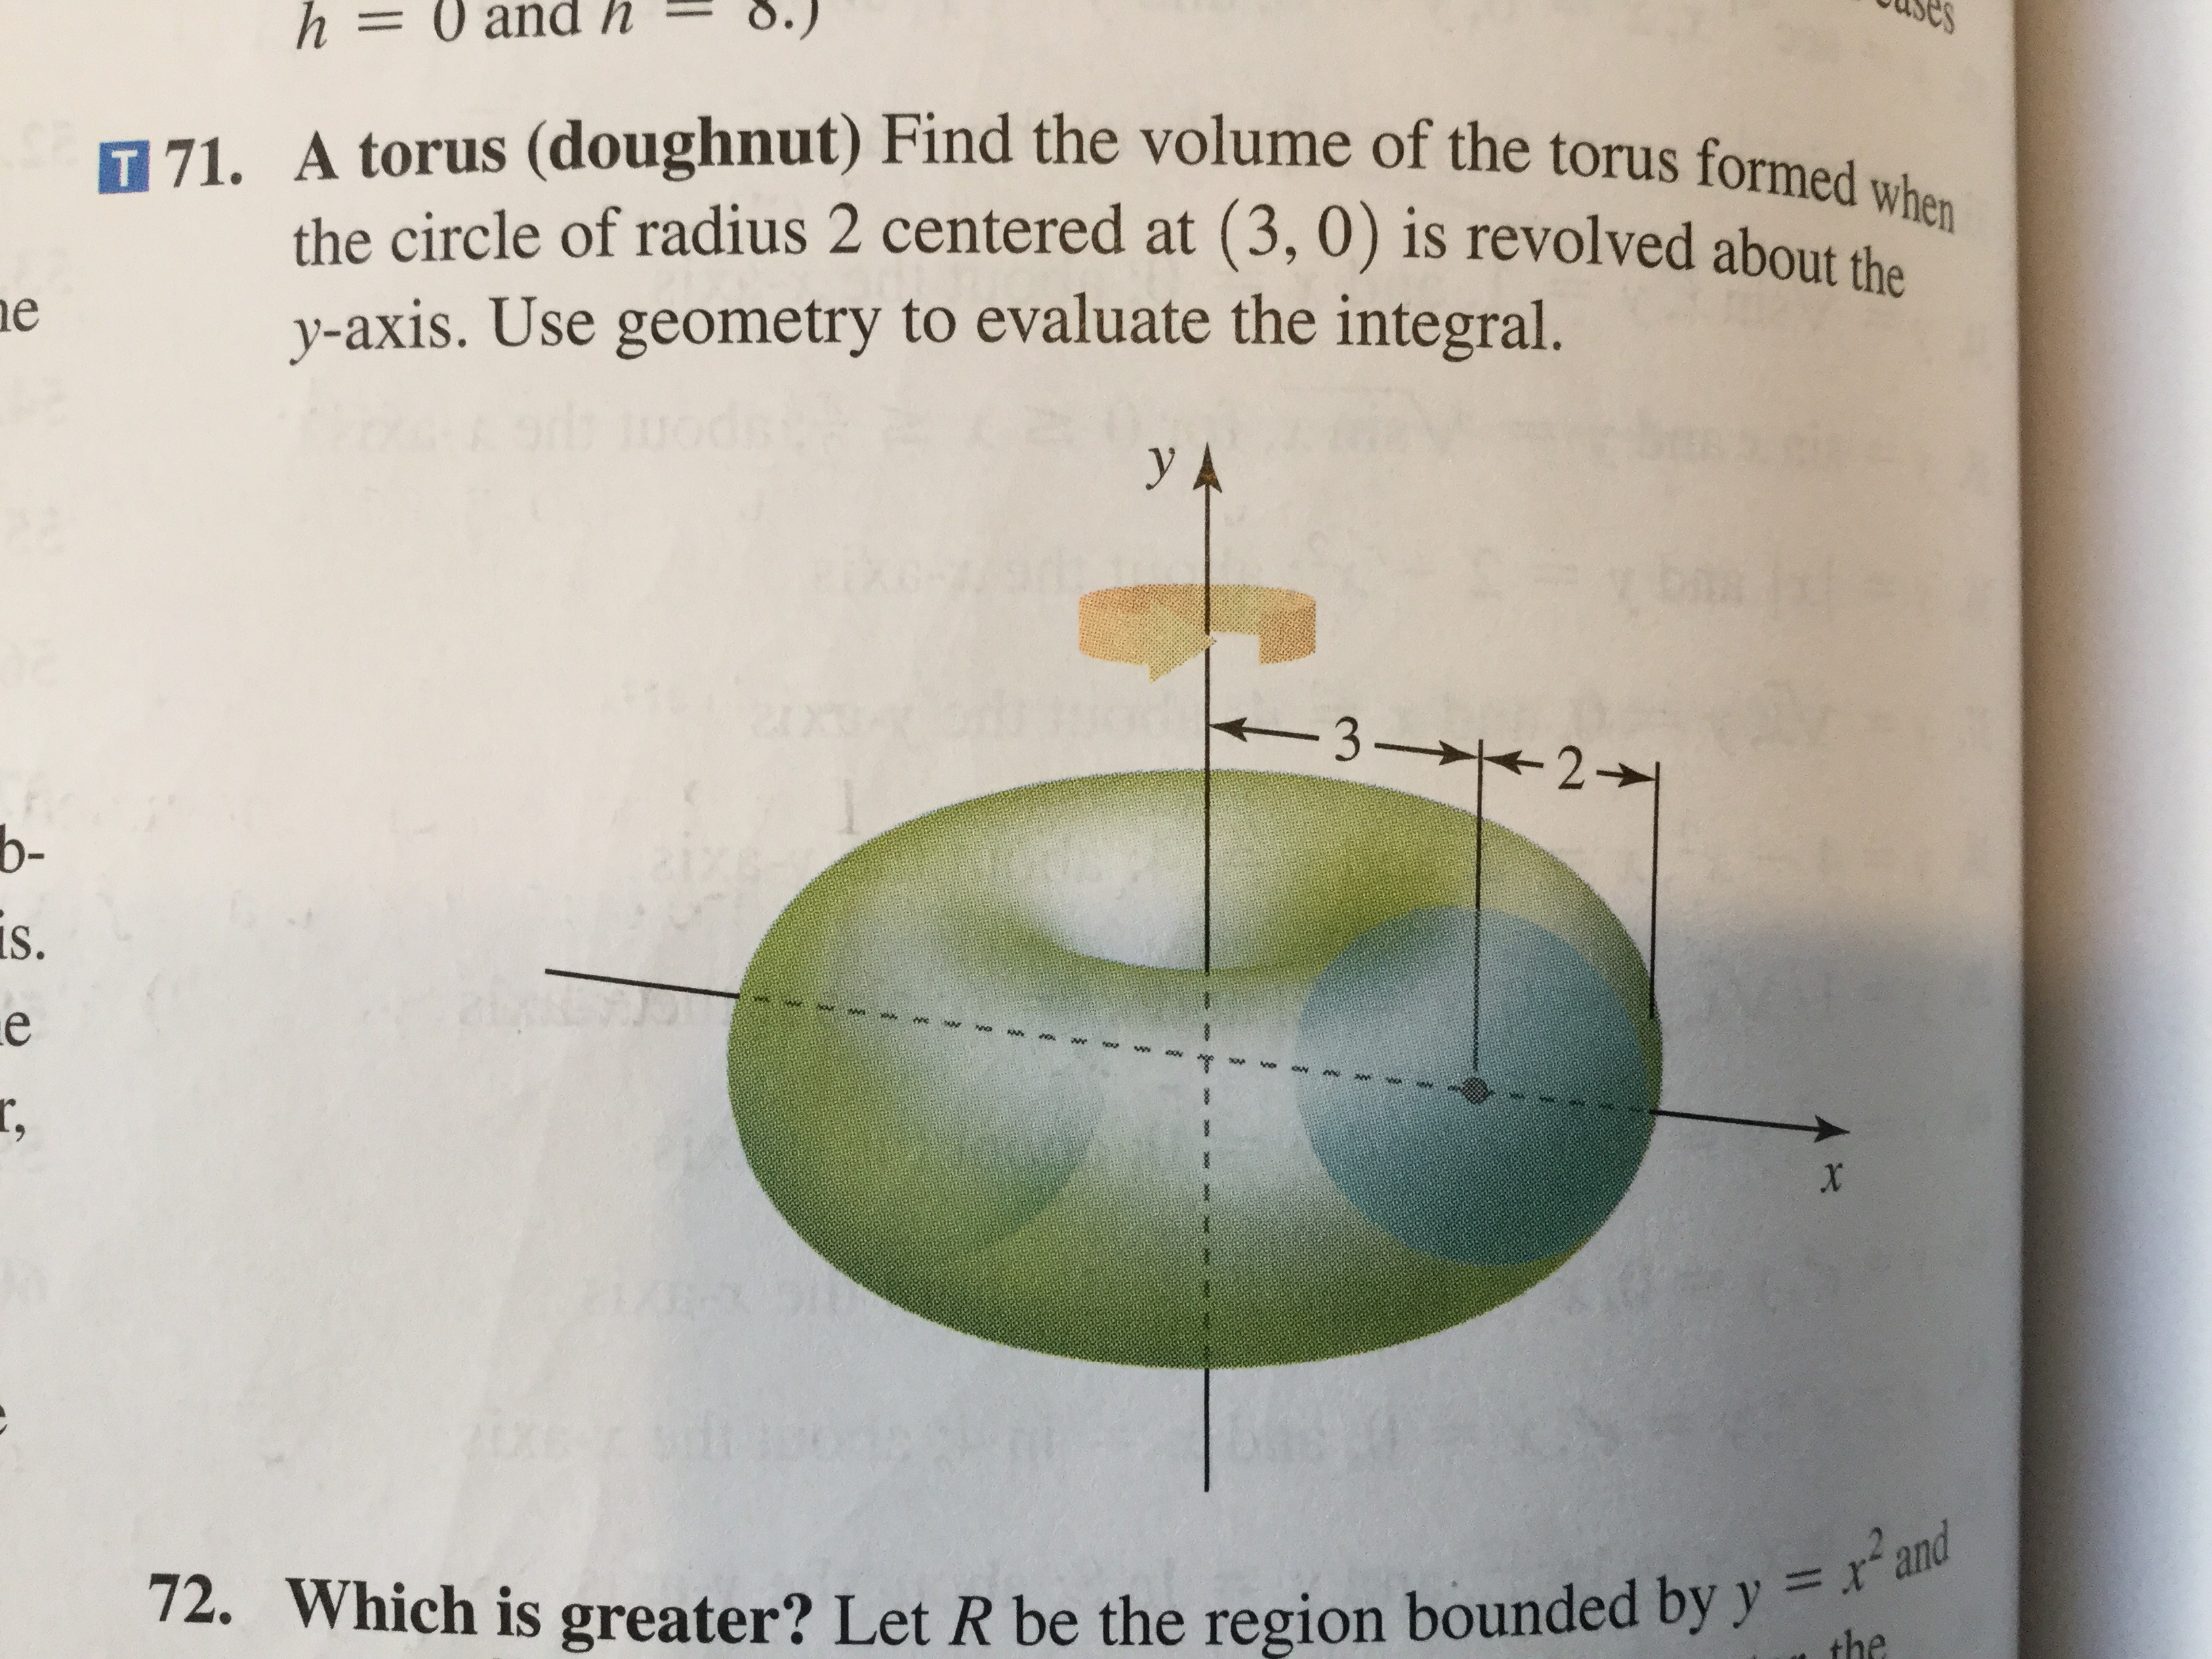 es h= 0 and h T 71. A torus (doughnut) Find the volume of the torus formed when the circle of radius 2 centered at (3, 0) is revolved about tha y-axis. Use geometry to evaluate the integral. e y A -3 21 b- is. e r, x 2U60 72. Which is greater? Let R be the region bounded by y = r'and = the